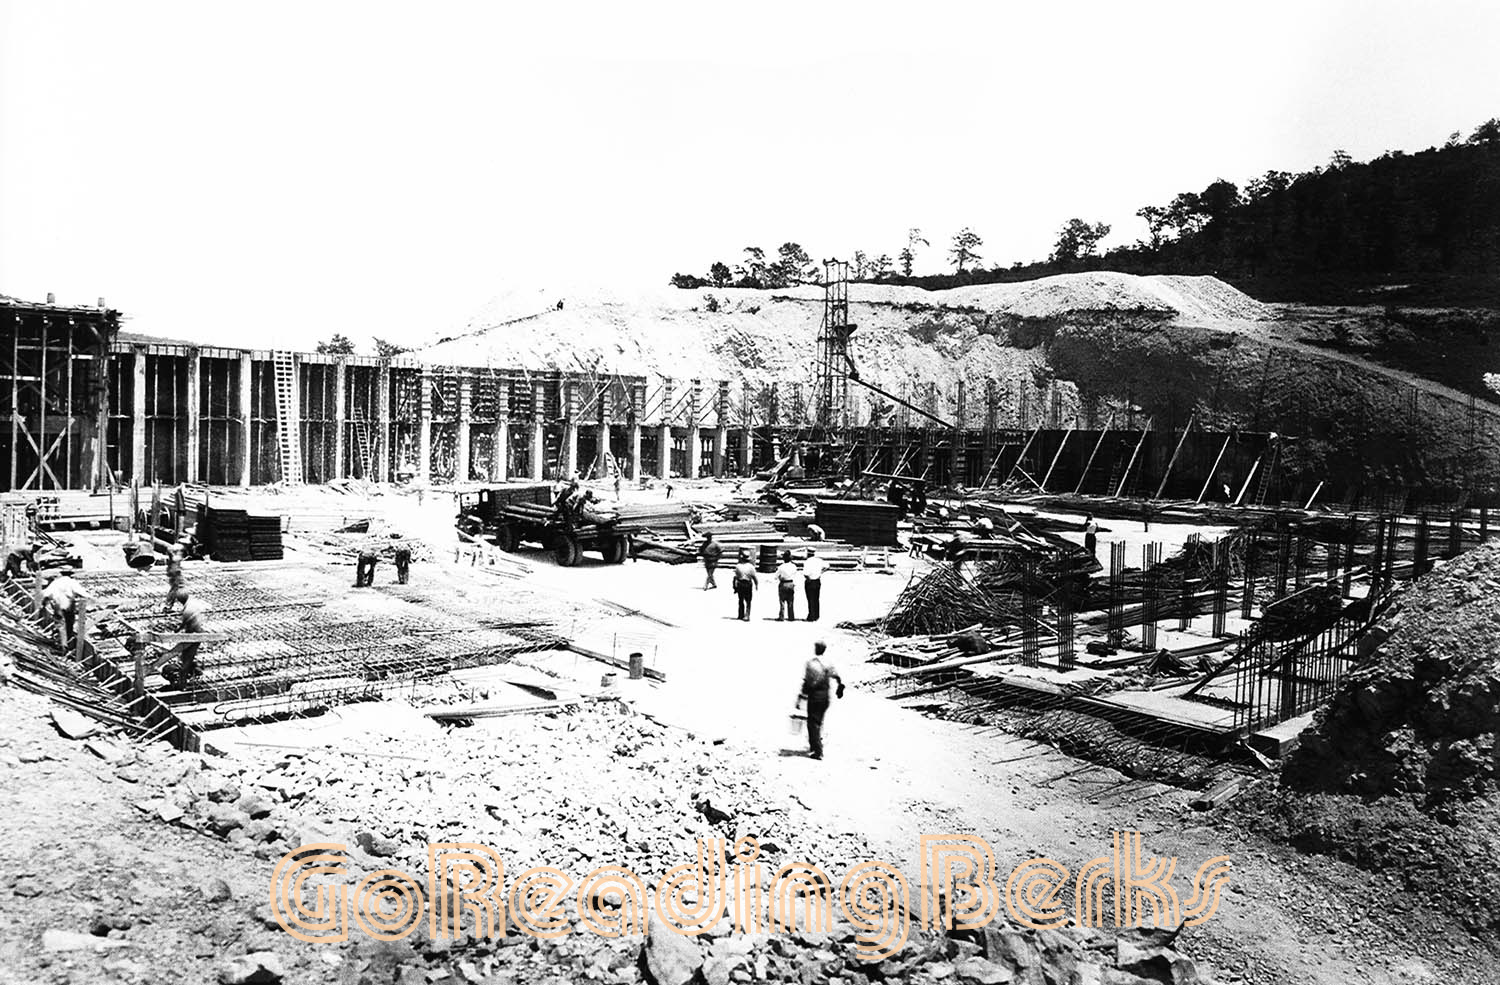 Construction of the Neversink Reservoir in 1936.